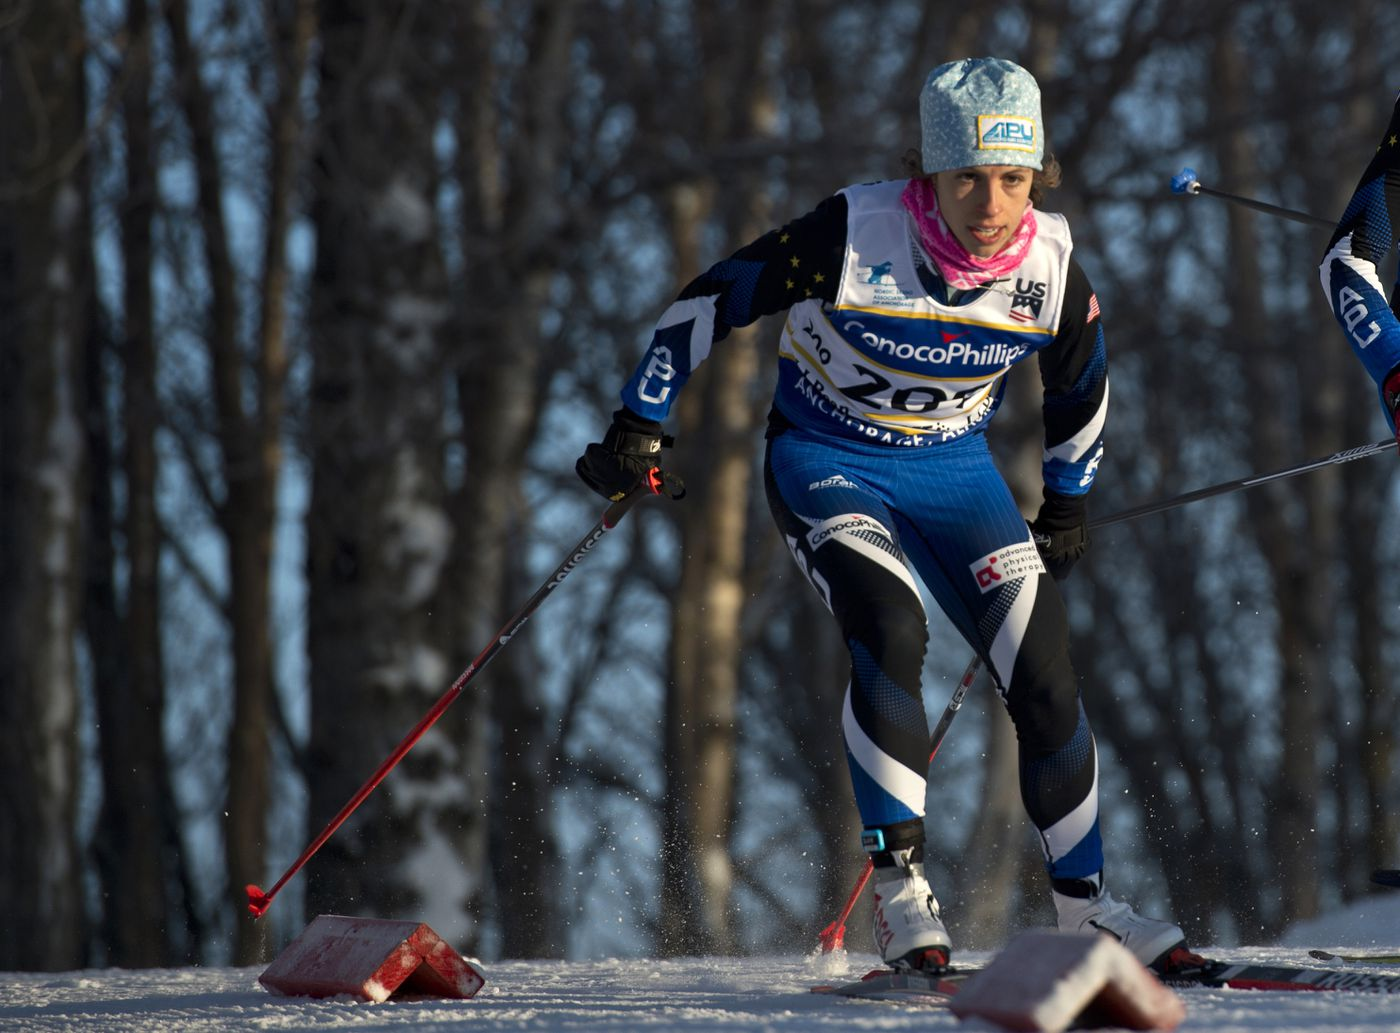 APU's Rosie Frankowski skis in the final day of the U.S. Cross Country Ski Championships on Jan. 8. (Marc Lester / ADN)